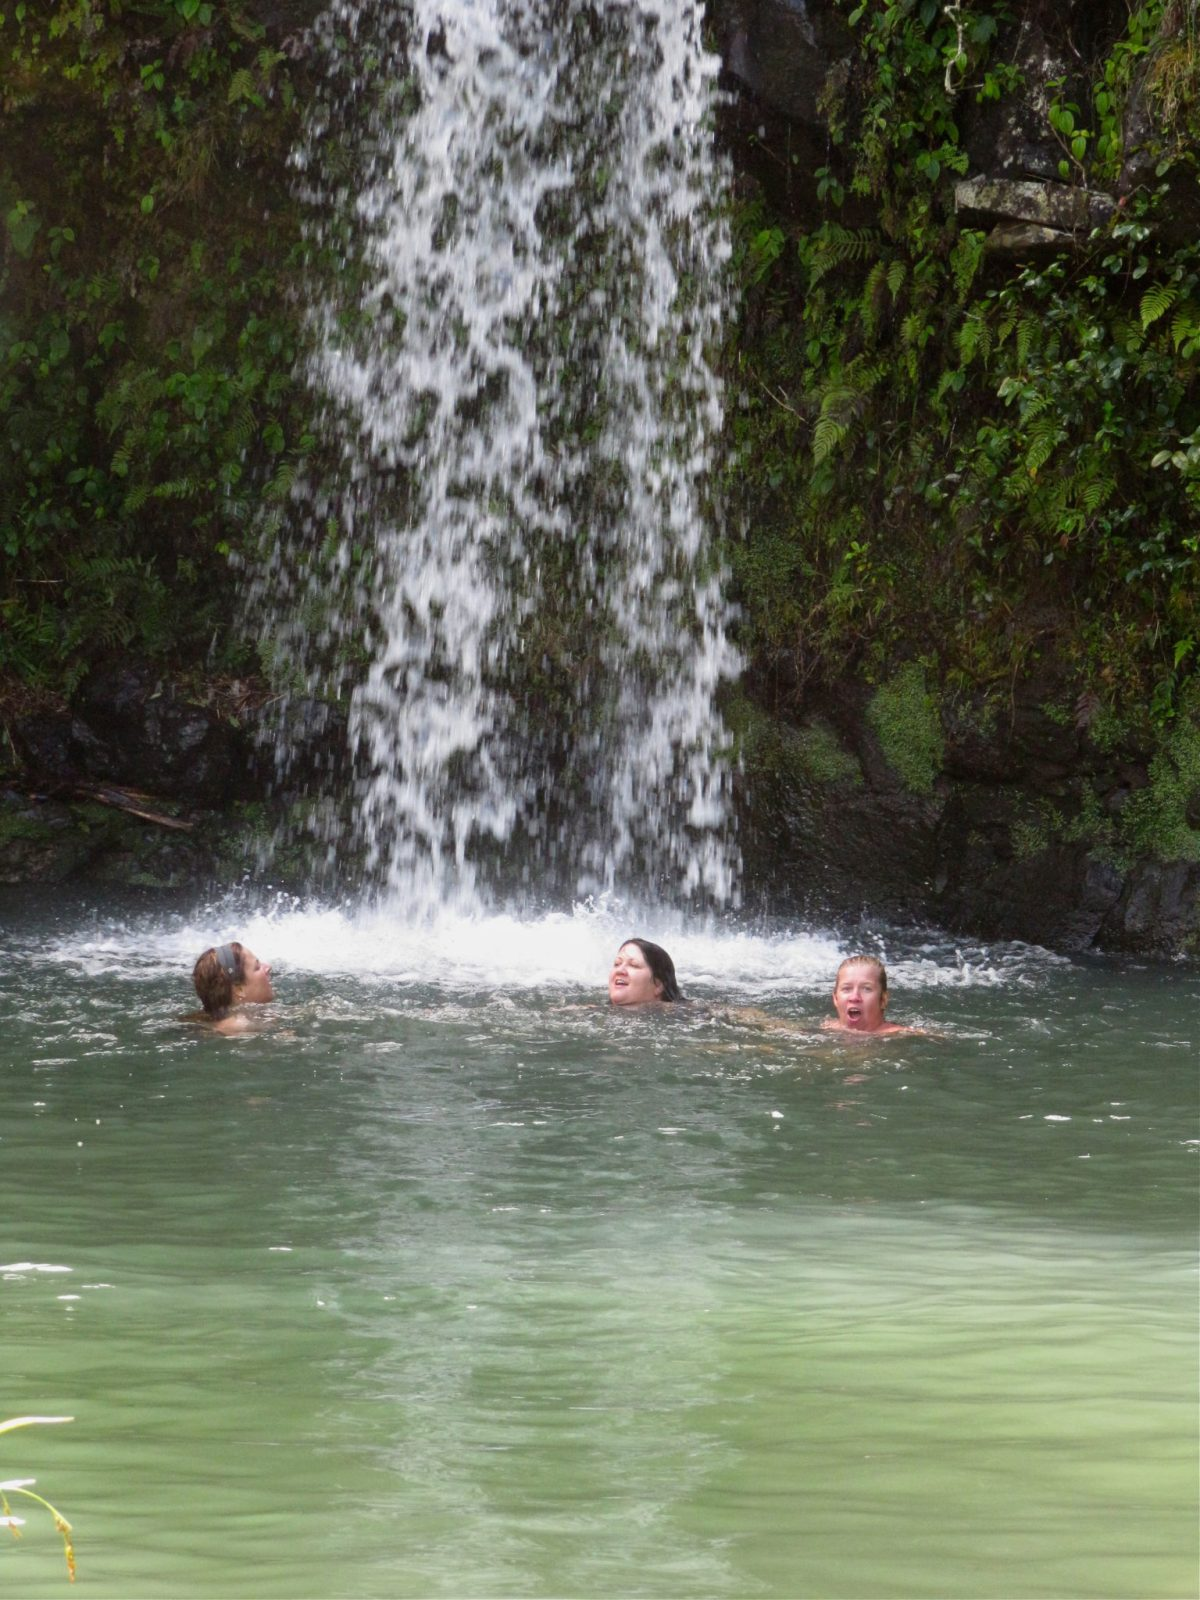 Swimming under a waterfall, oh yeah